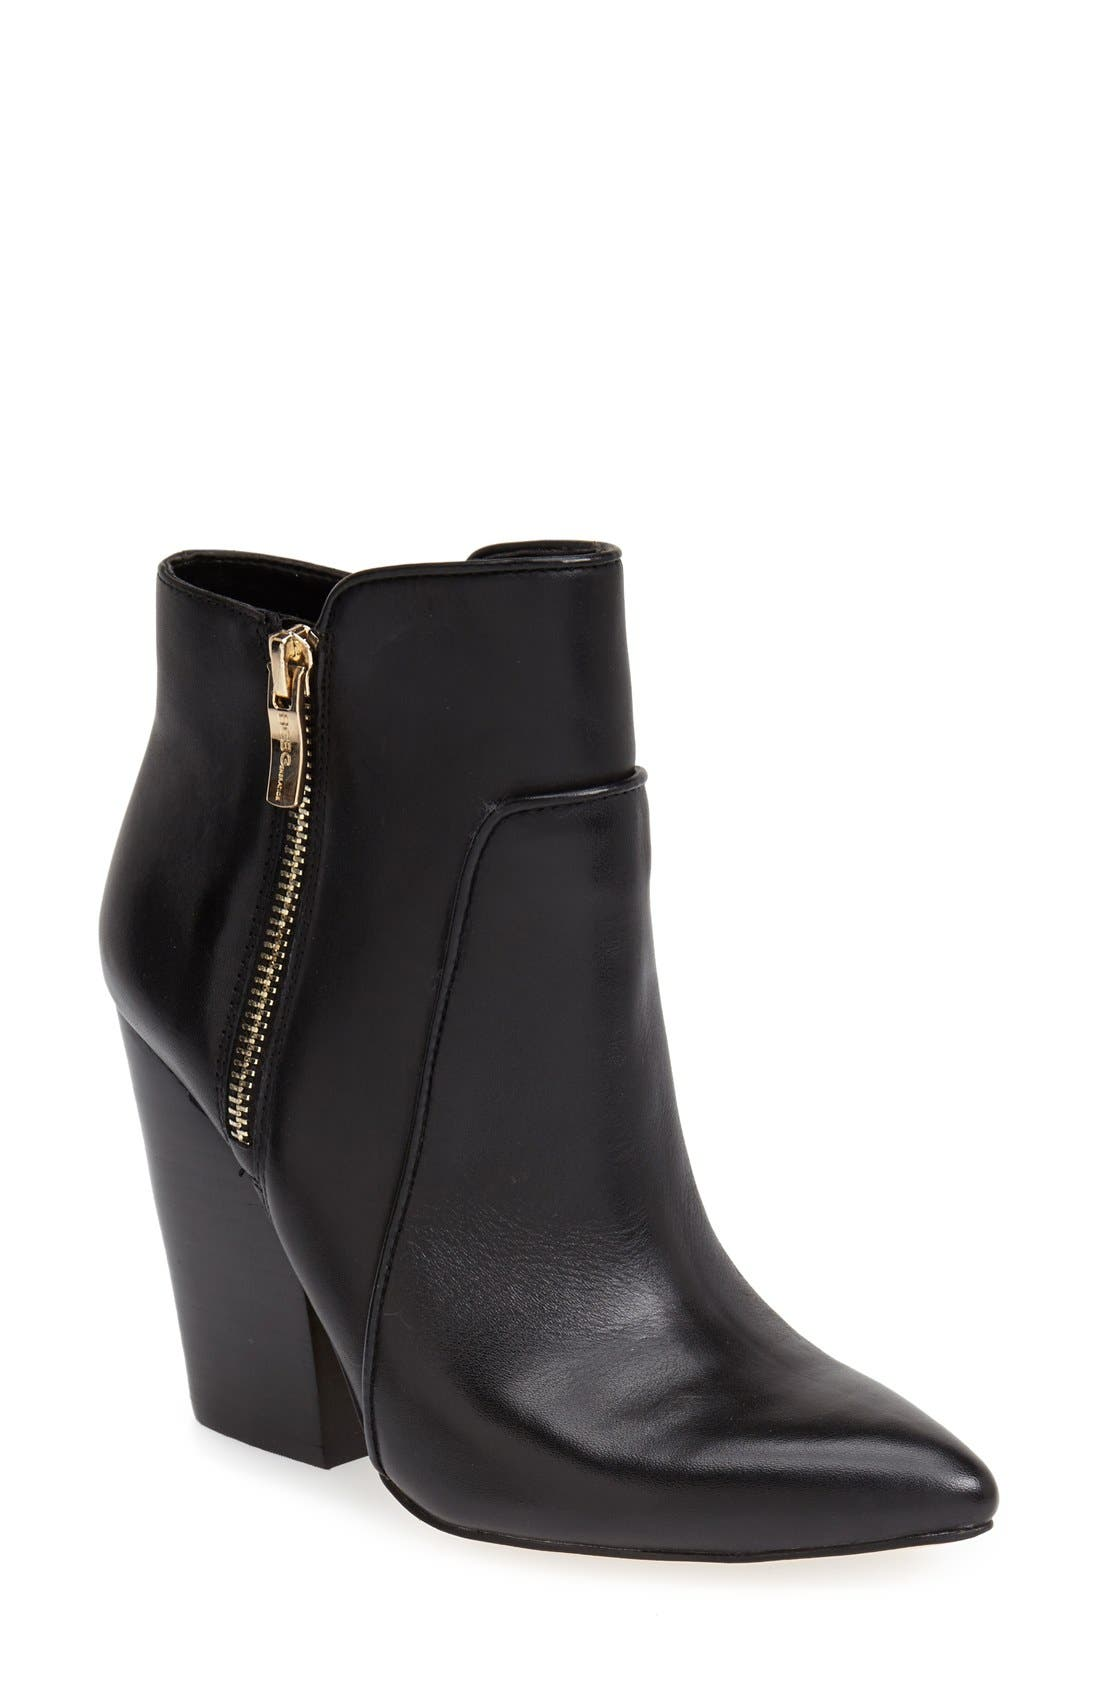 'Jules' Pointy Toe Leather Bootie, Main, color, 002